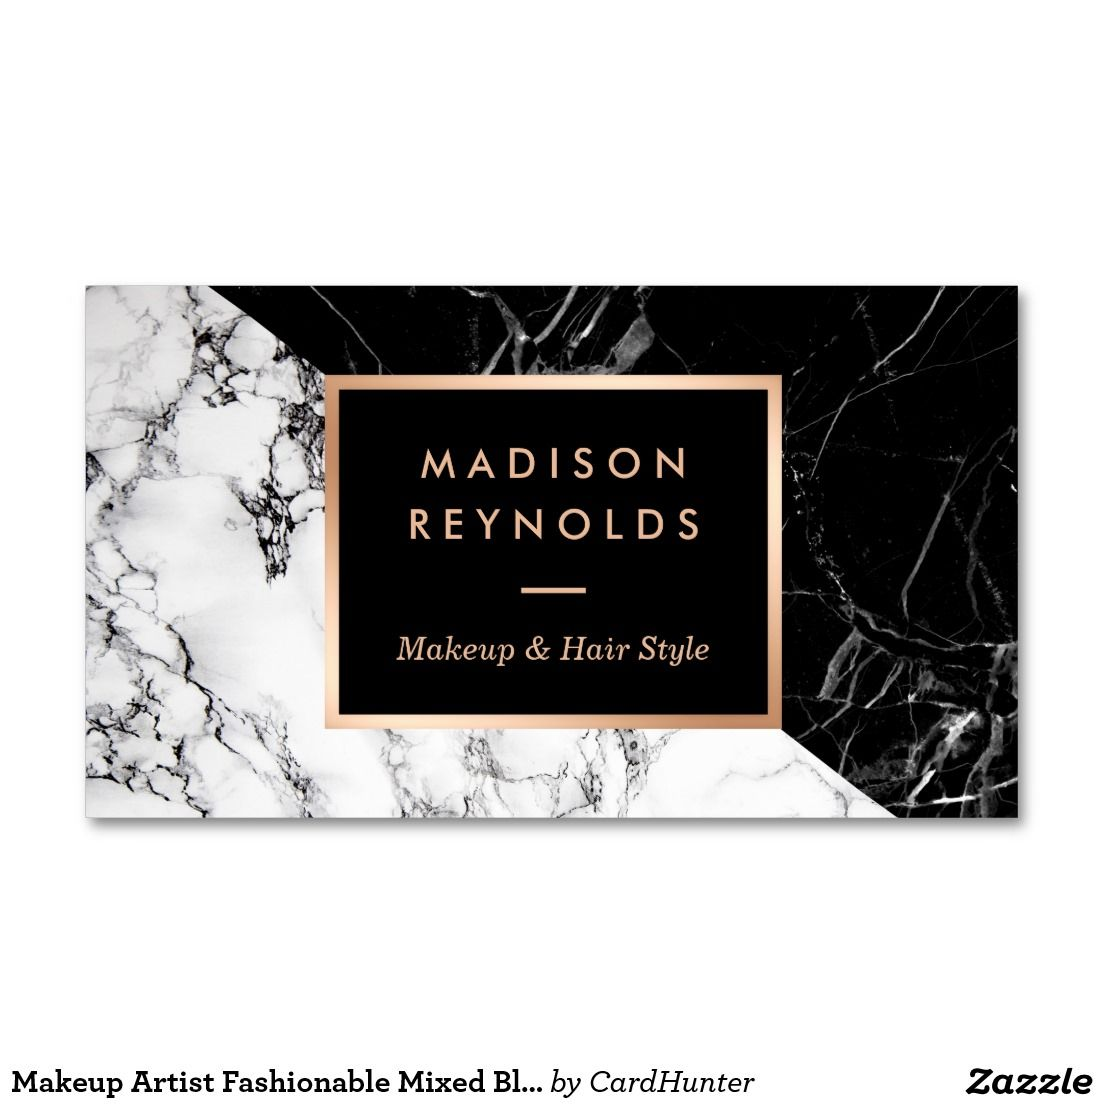 Makeup Artist Fashionable Mixed Black White Marble Business Card ...